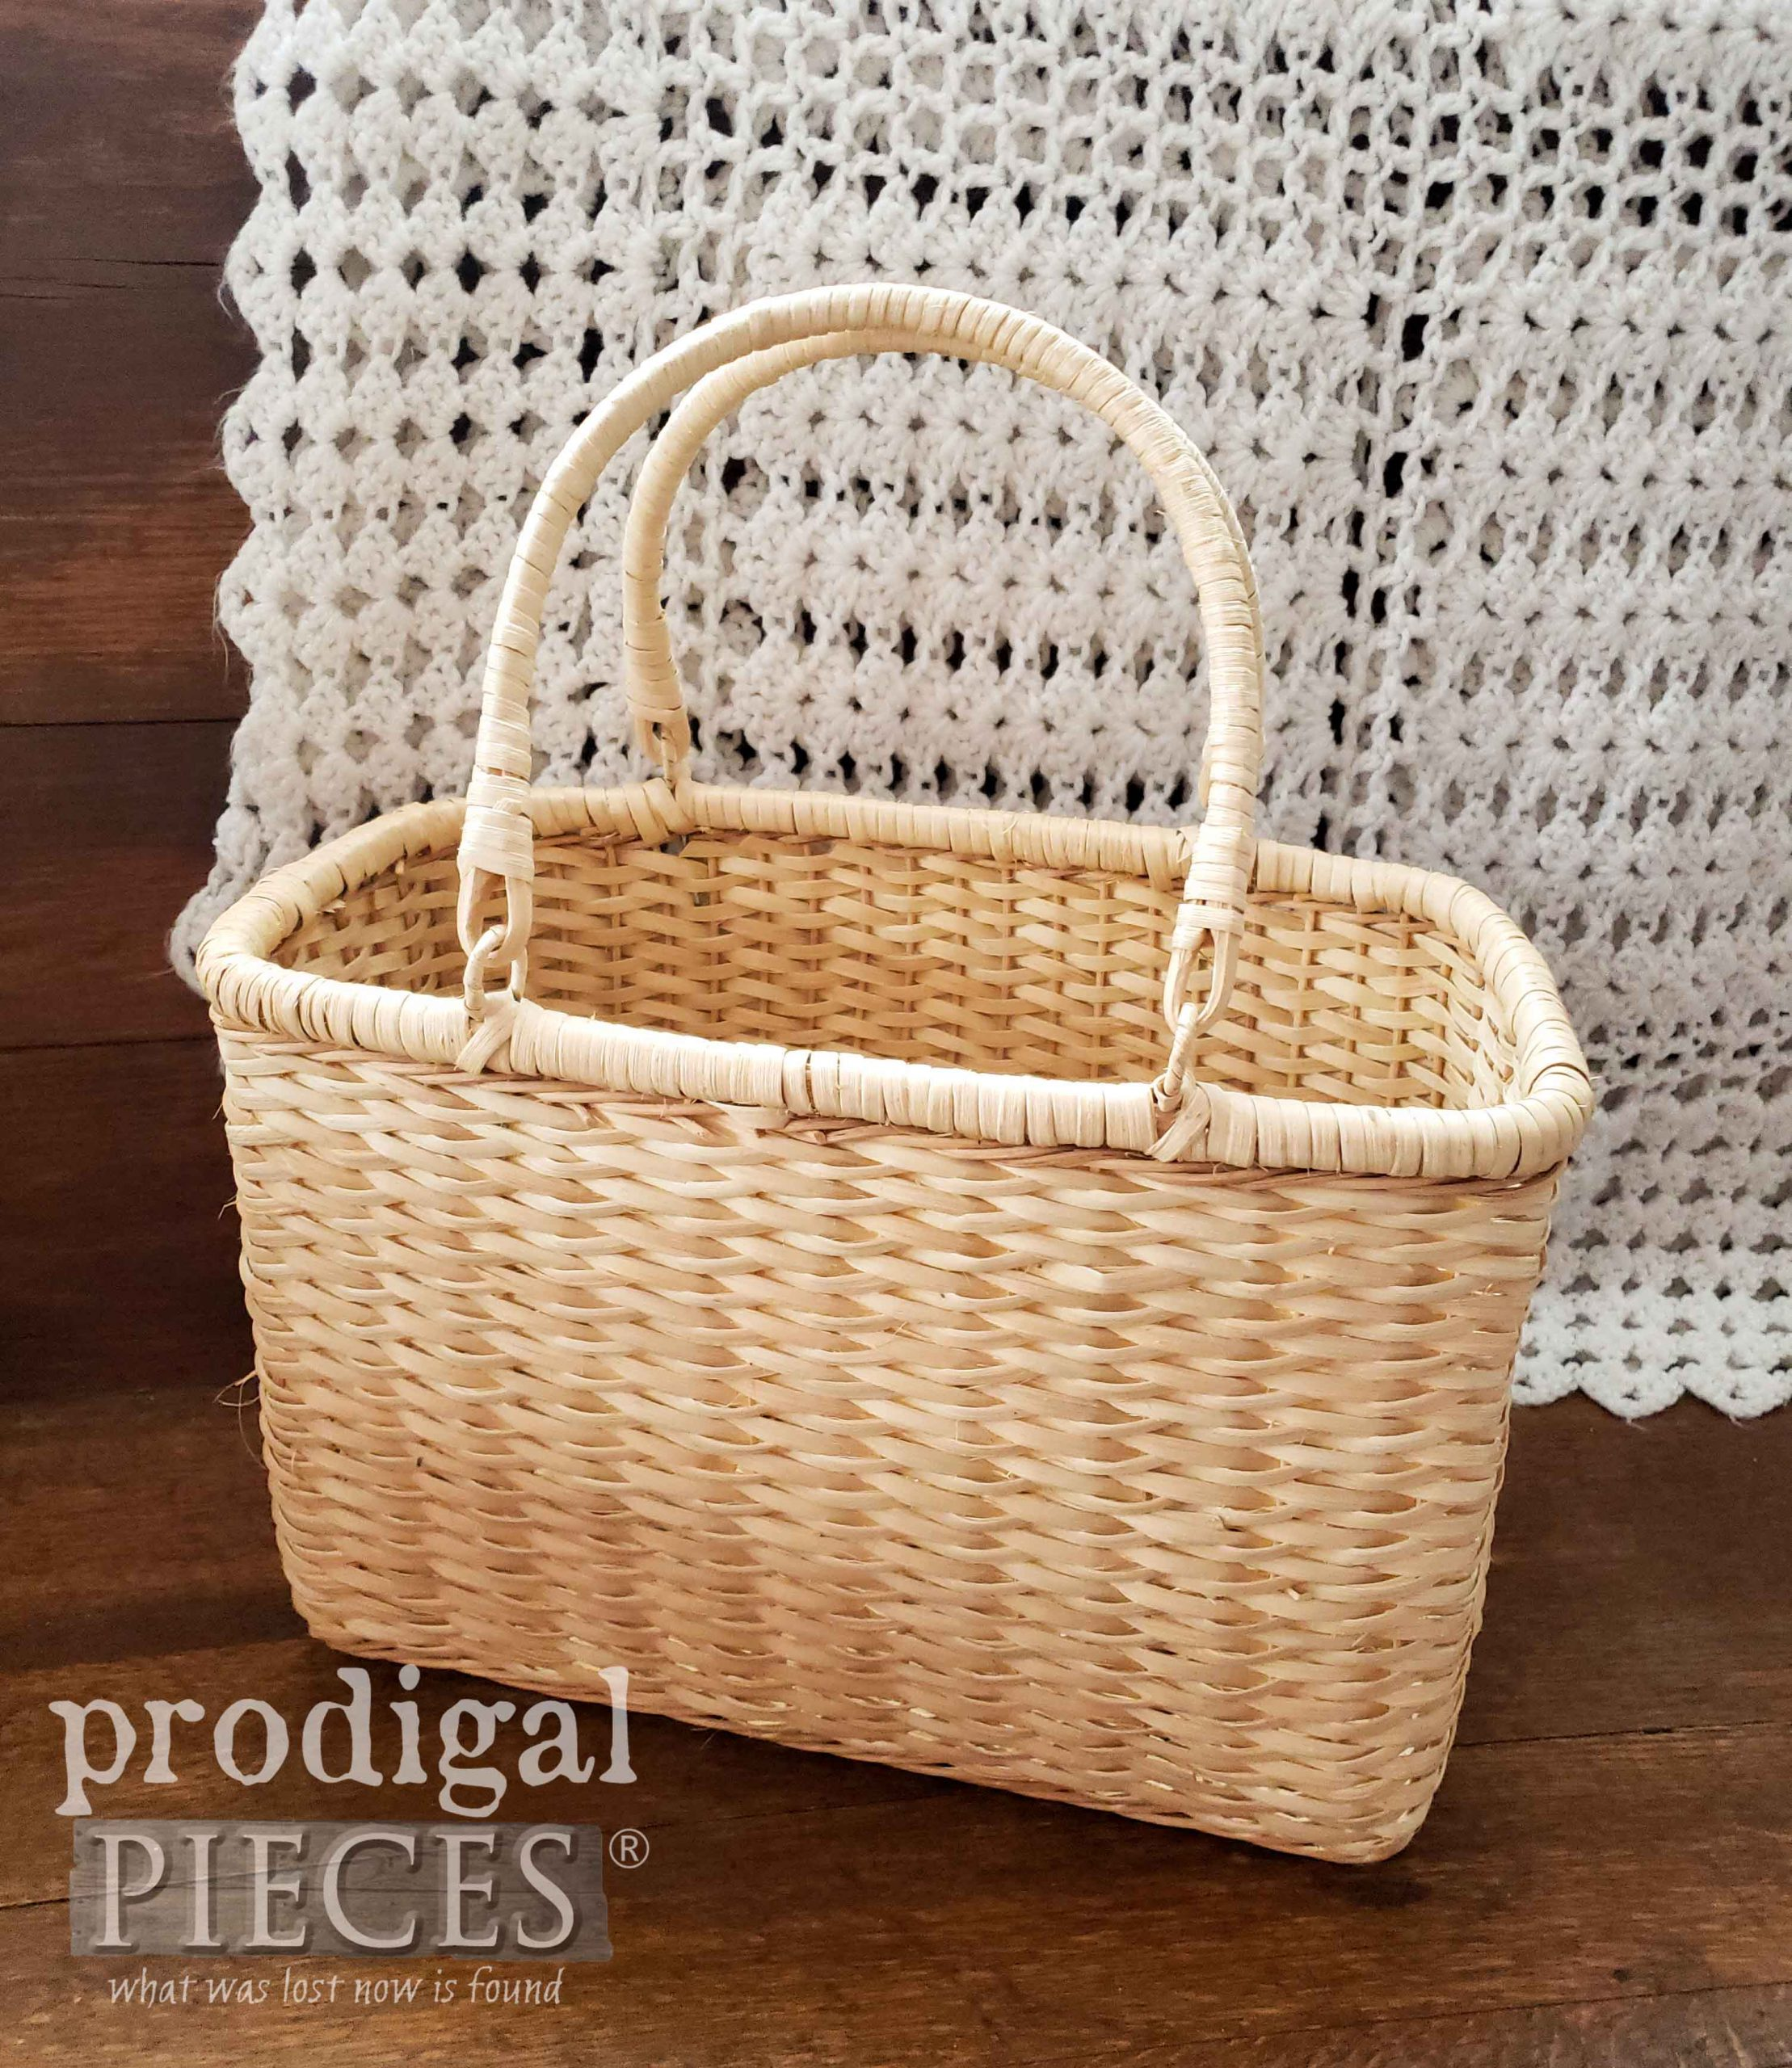 Thrifted Basket Before Picnic Makeover by Larissa of Prodigal Pieces | prodigalpieces.com